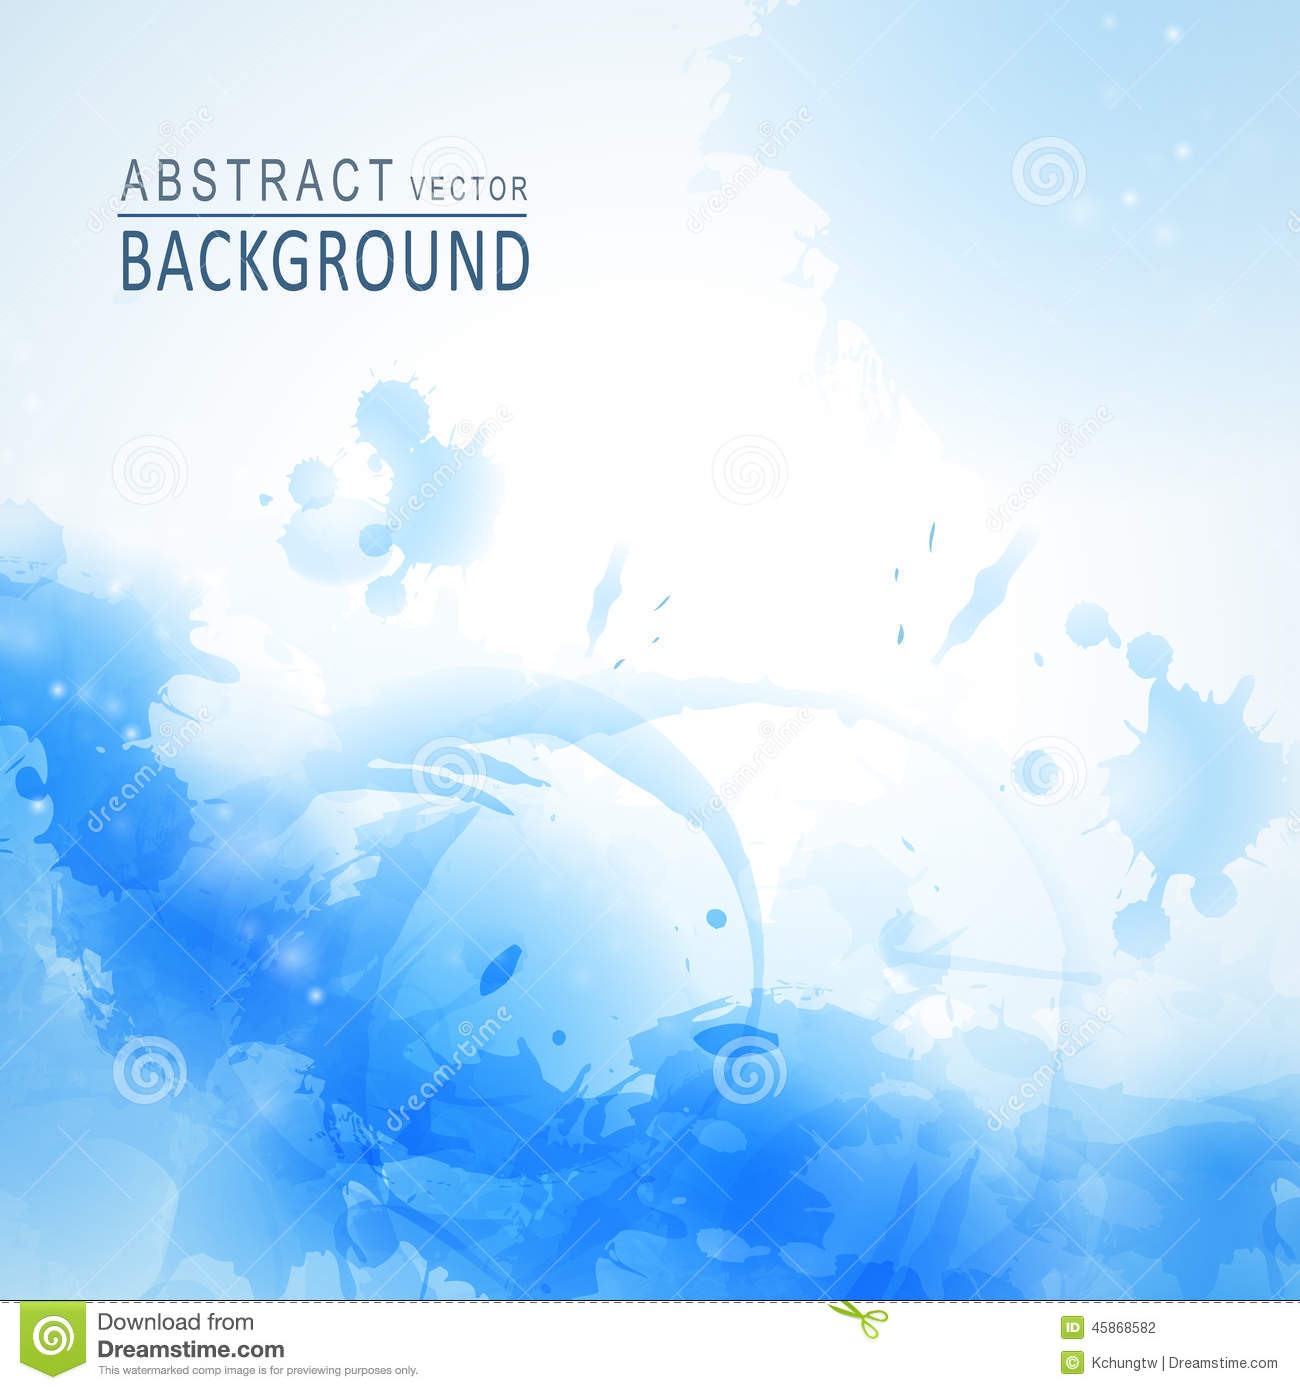 Free poster background design